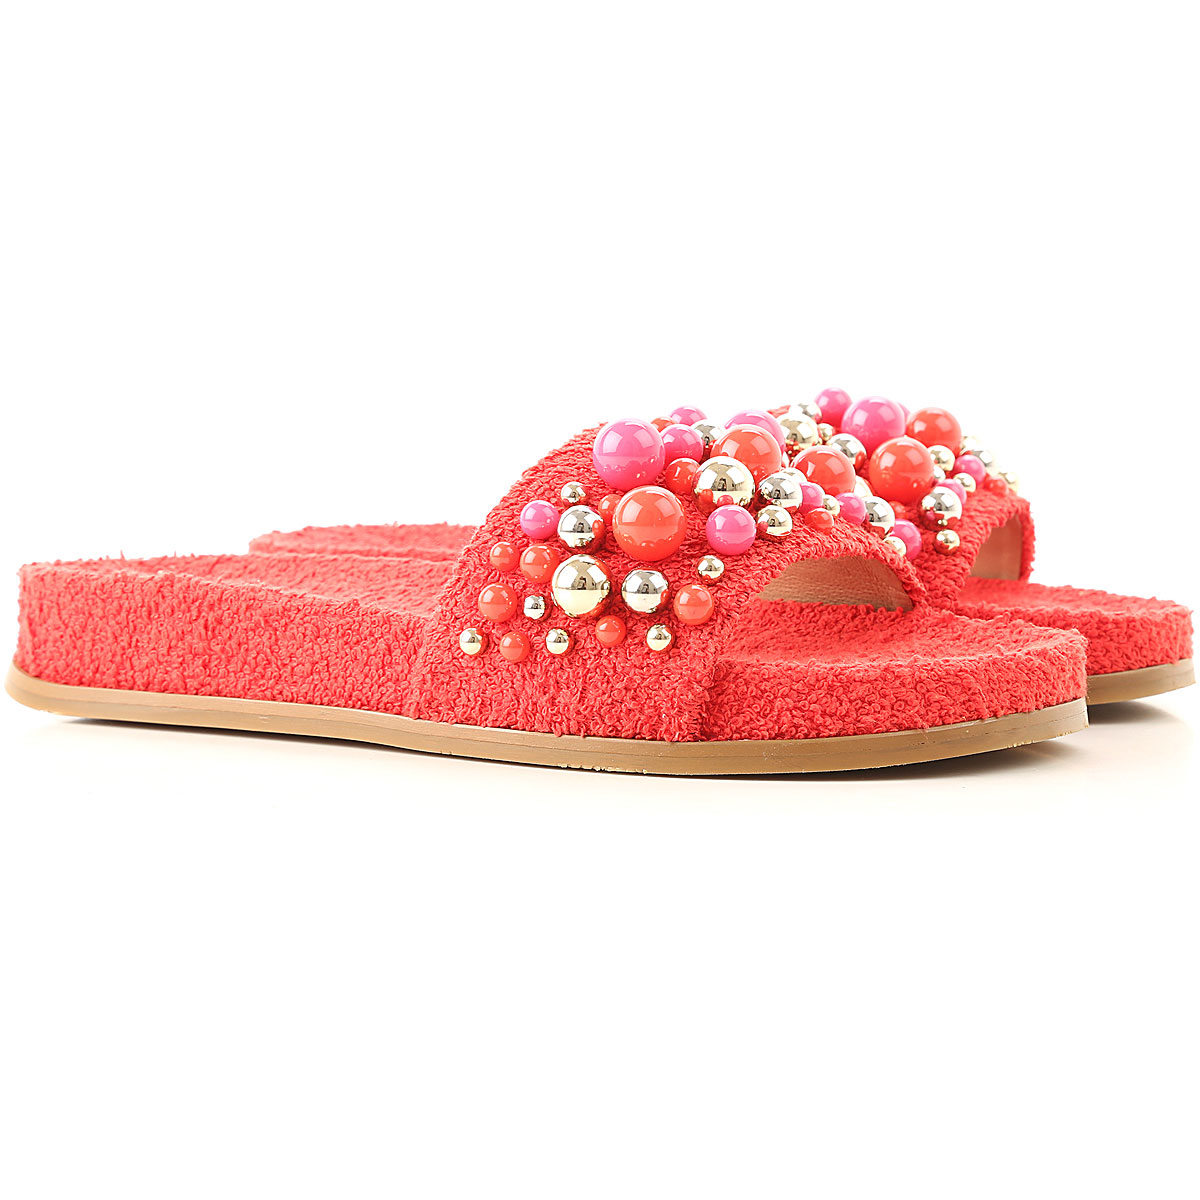 Aquazzura Flip Flops for Women, Thongs On Sale in Outlet, Carnation Red, Fabric, 2019, 6 6.5 7